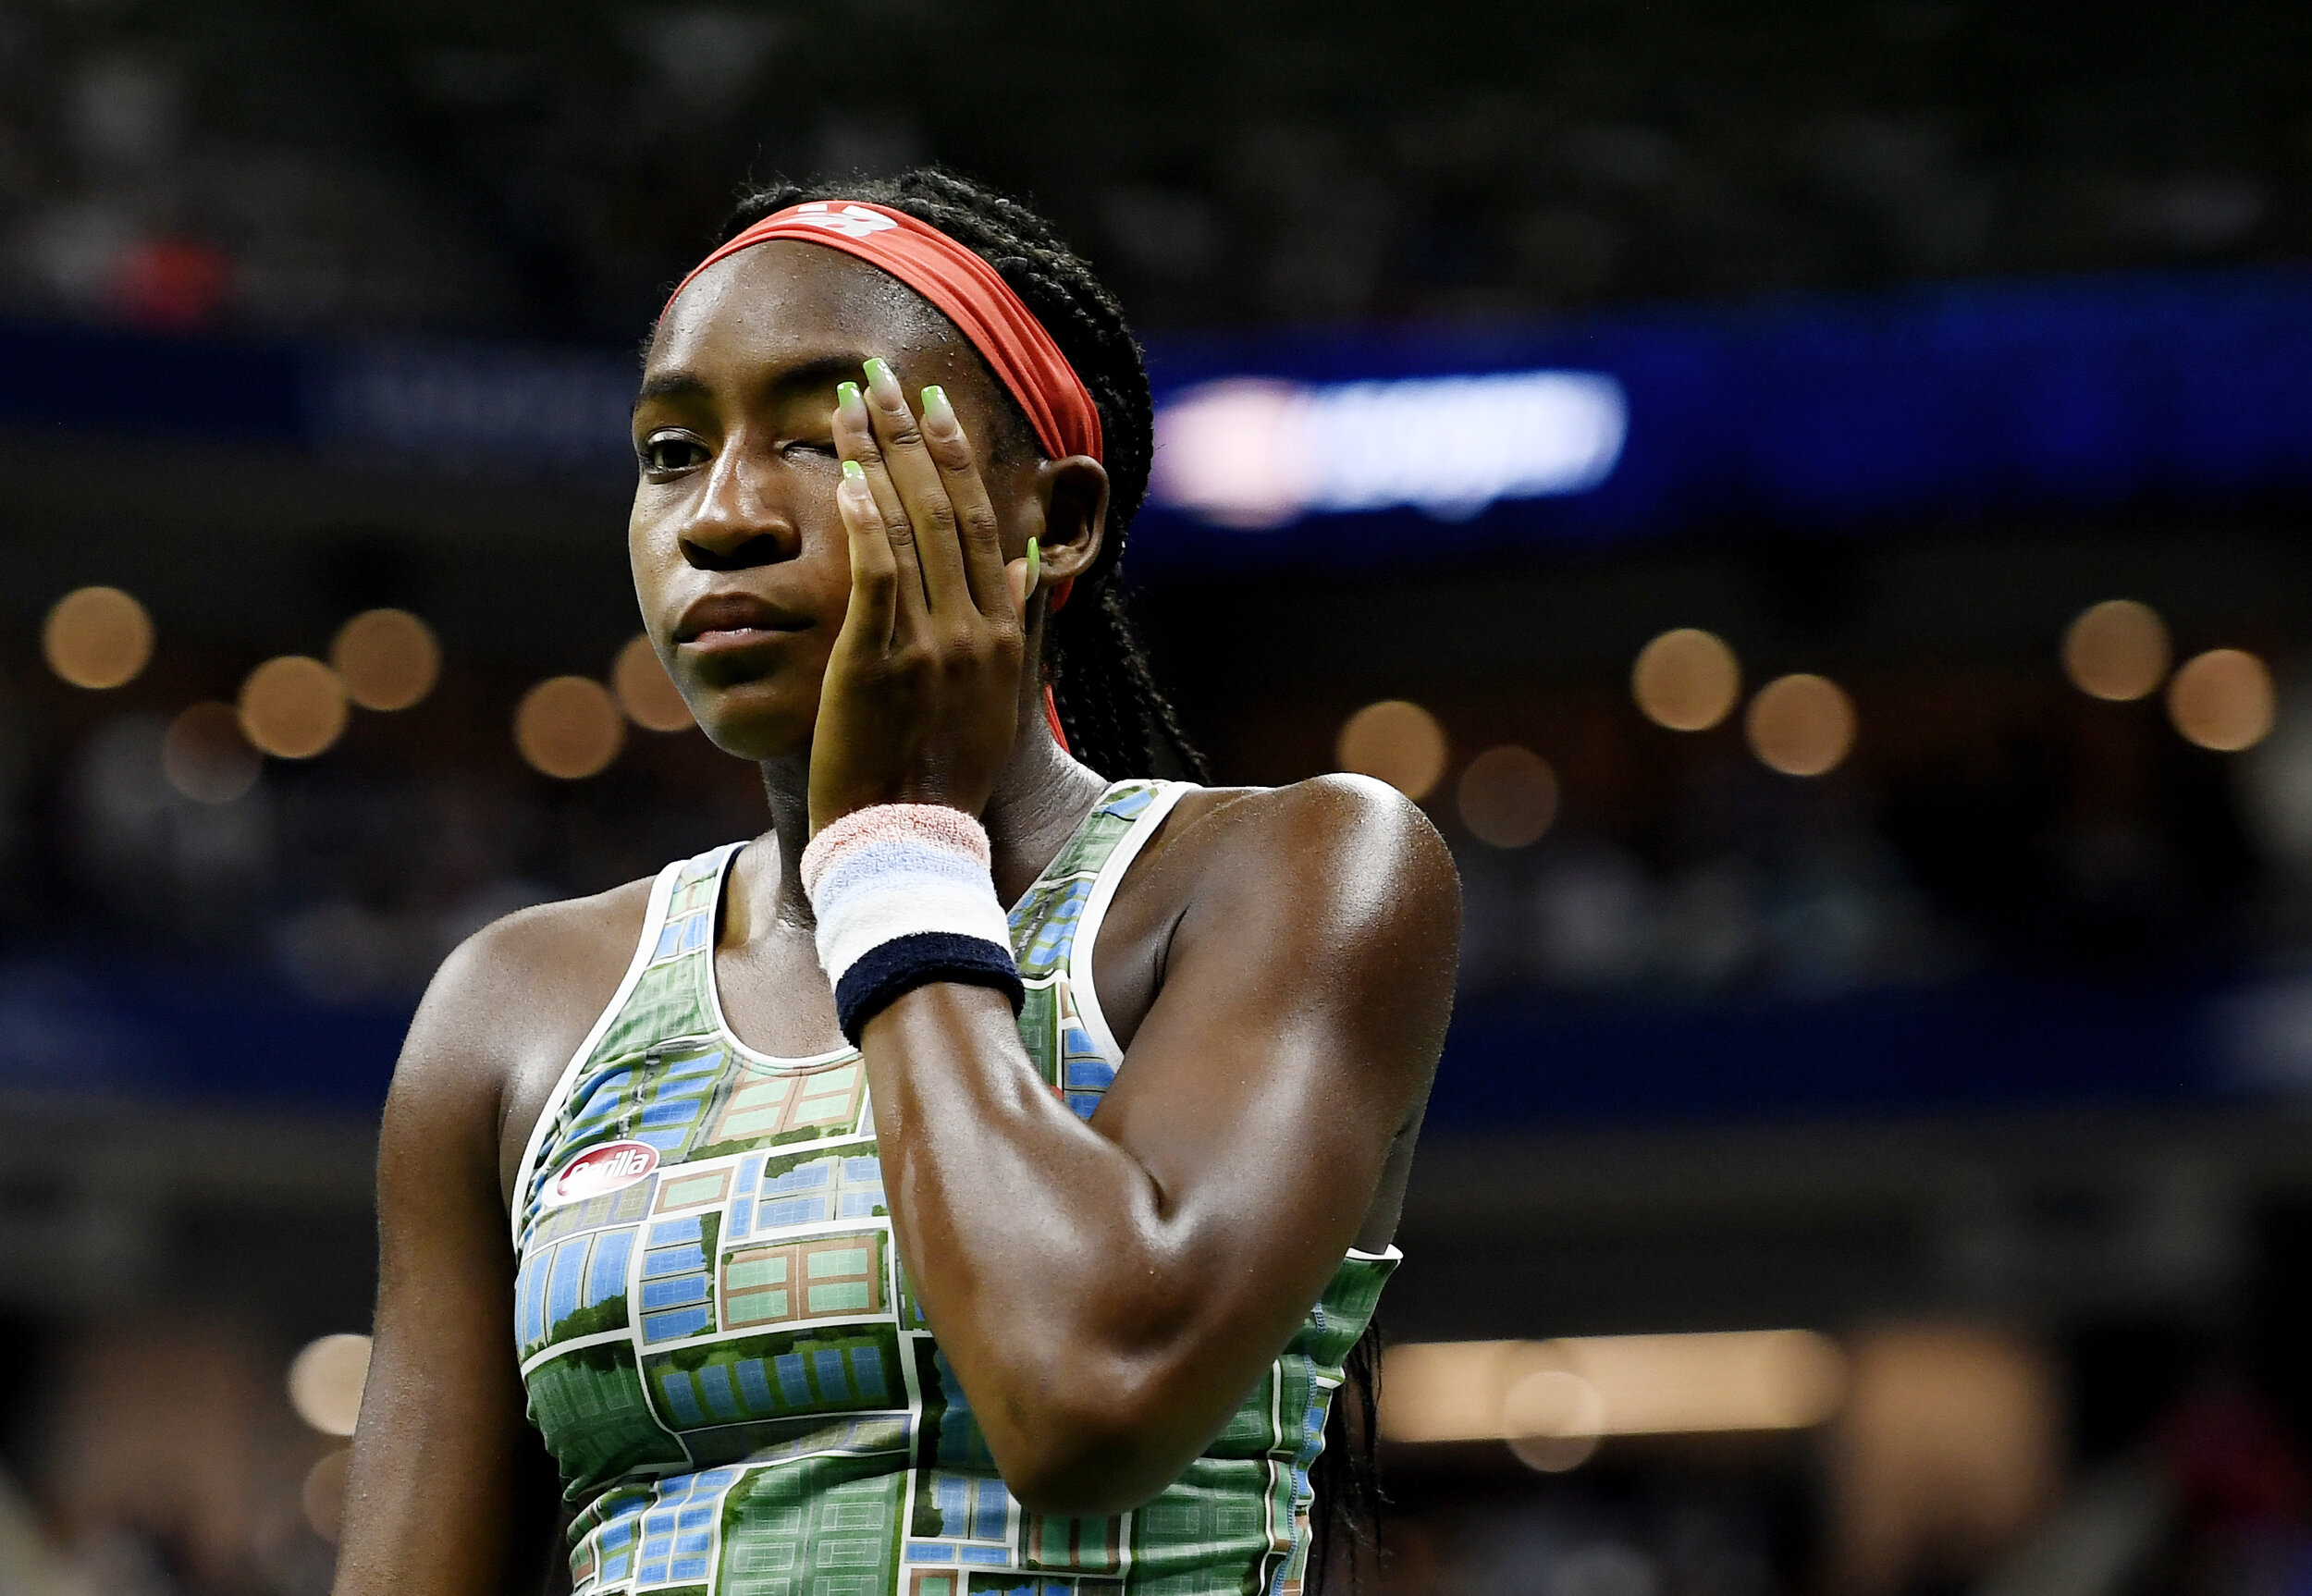 Coco Gauff, of the United States, reacts during a match against Naomi Osaka, of Japan, during the third round of the U.S. Open tennis tournament Saturday, Aug. 31, 2019, in New York.